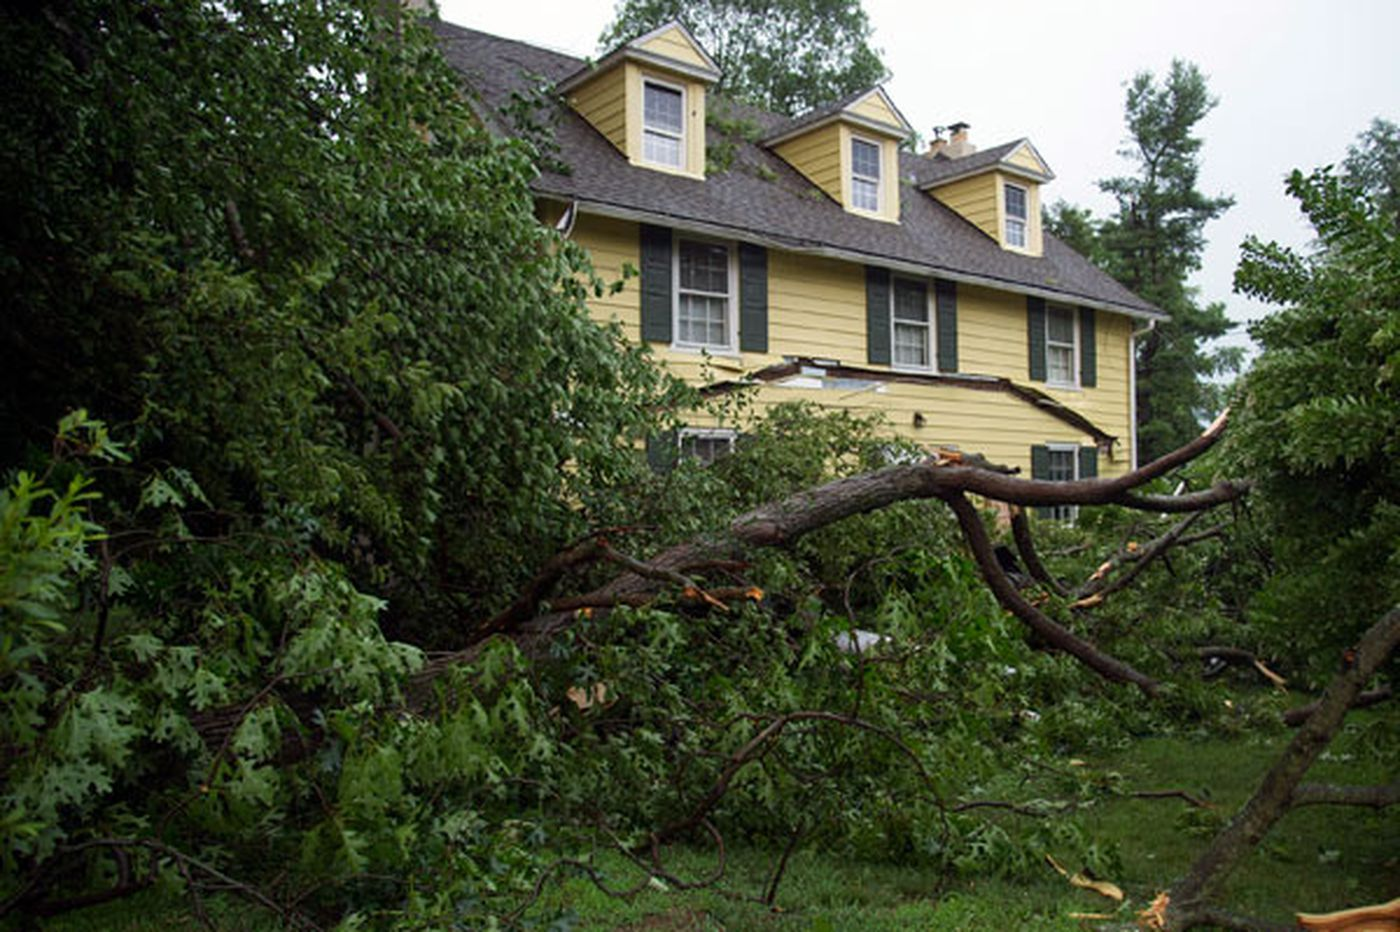 Tornado touched down in New Jersey: National Weather Service